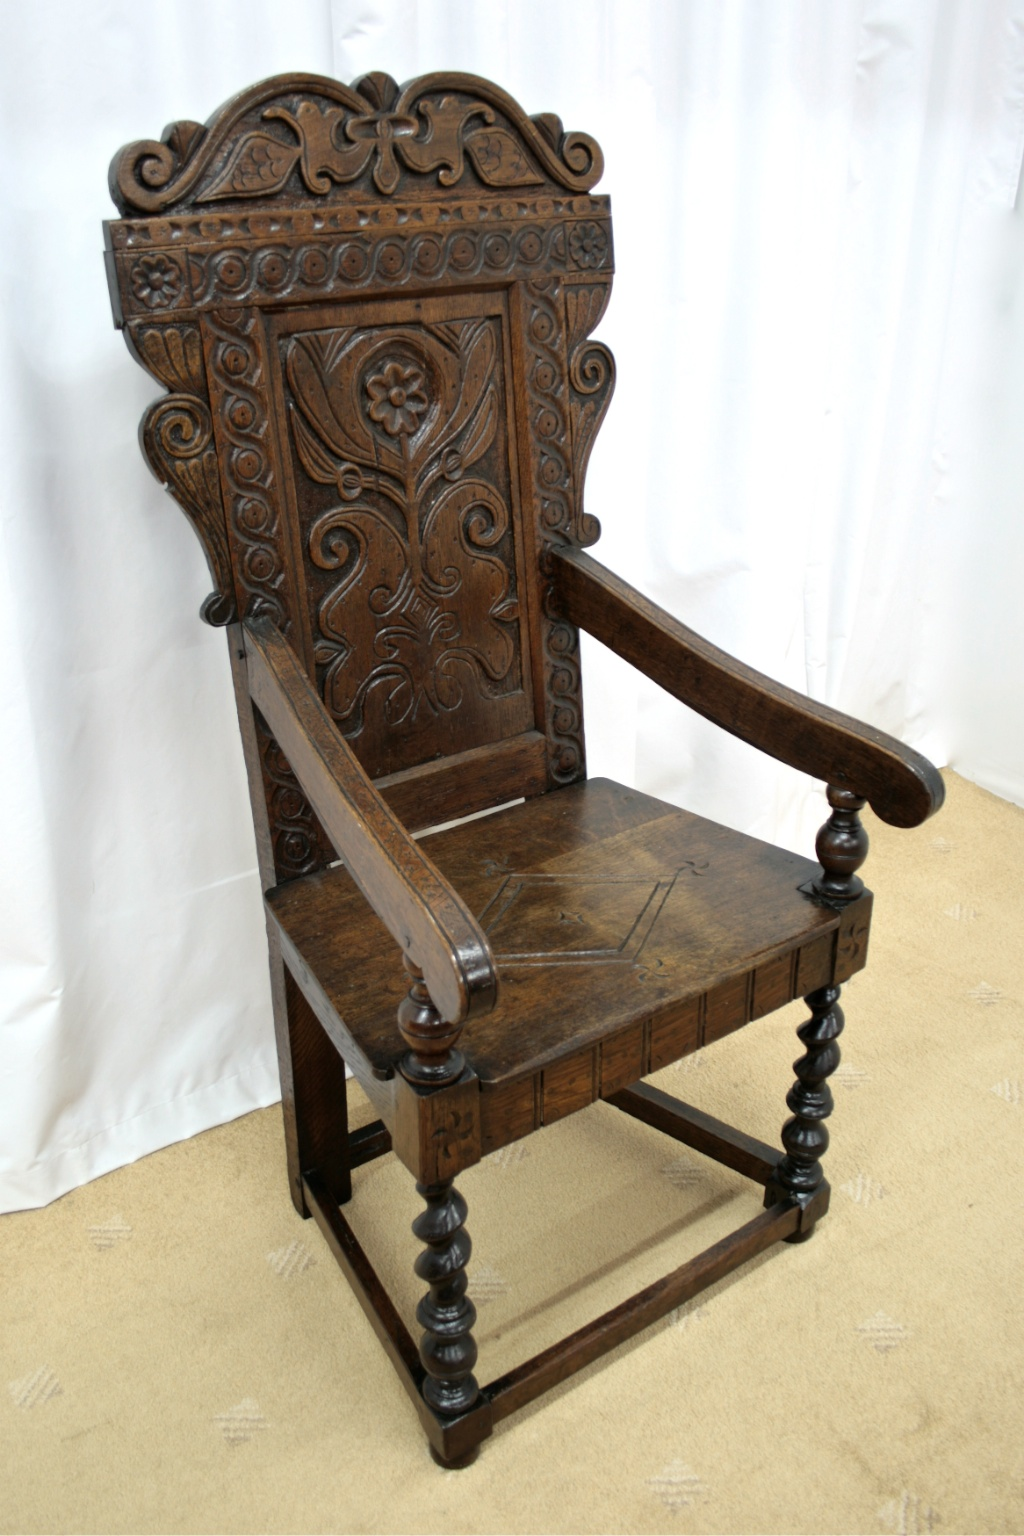 19th century oak wainscot style chairs for sale classifieds. Black Bedroom Furniture Sets. Home Design Ideas